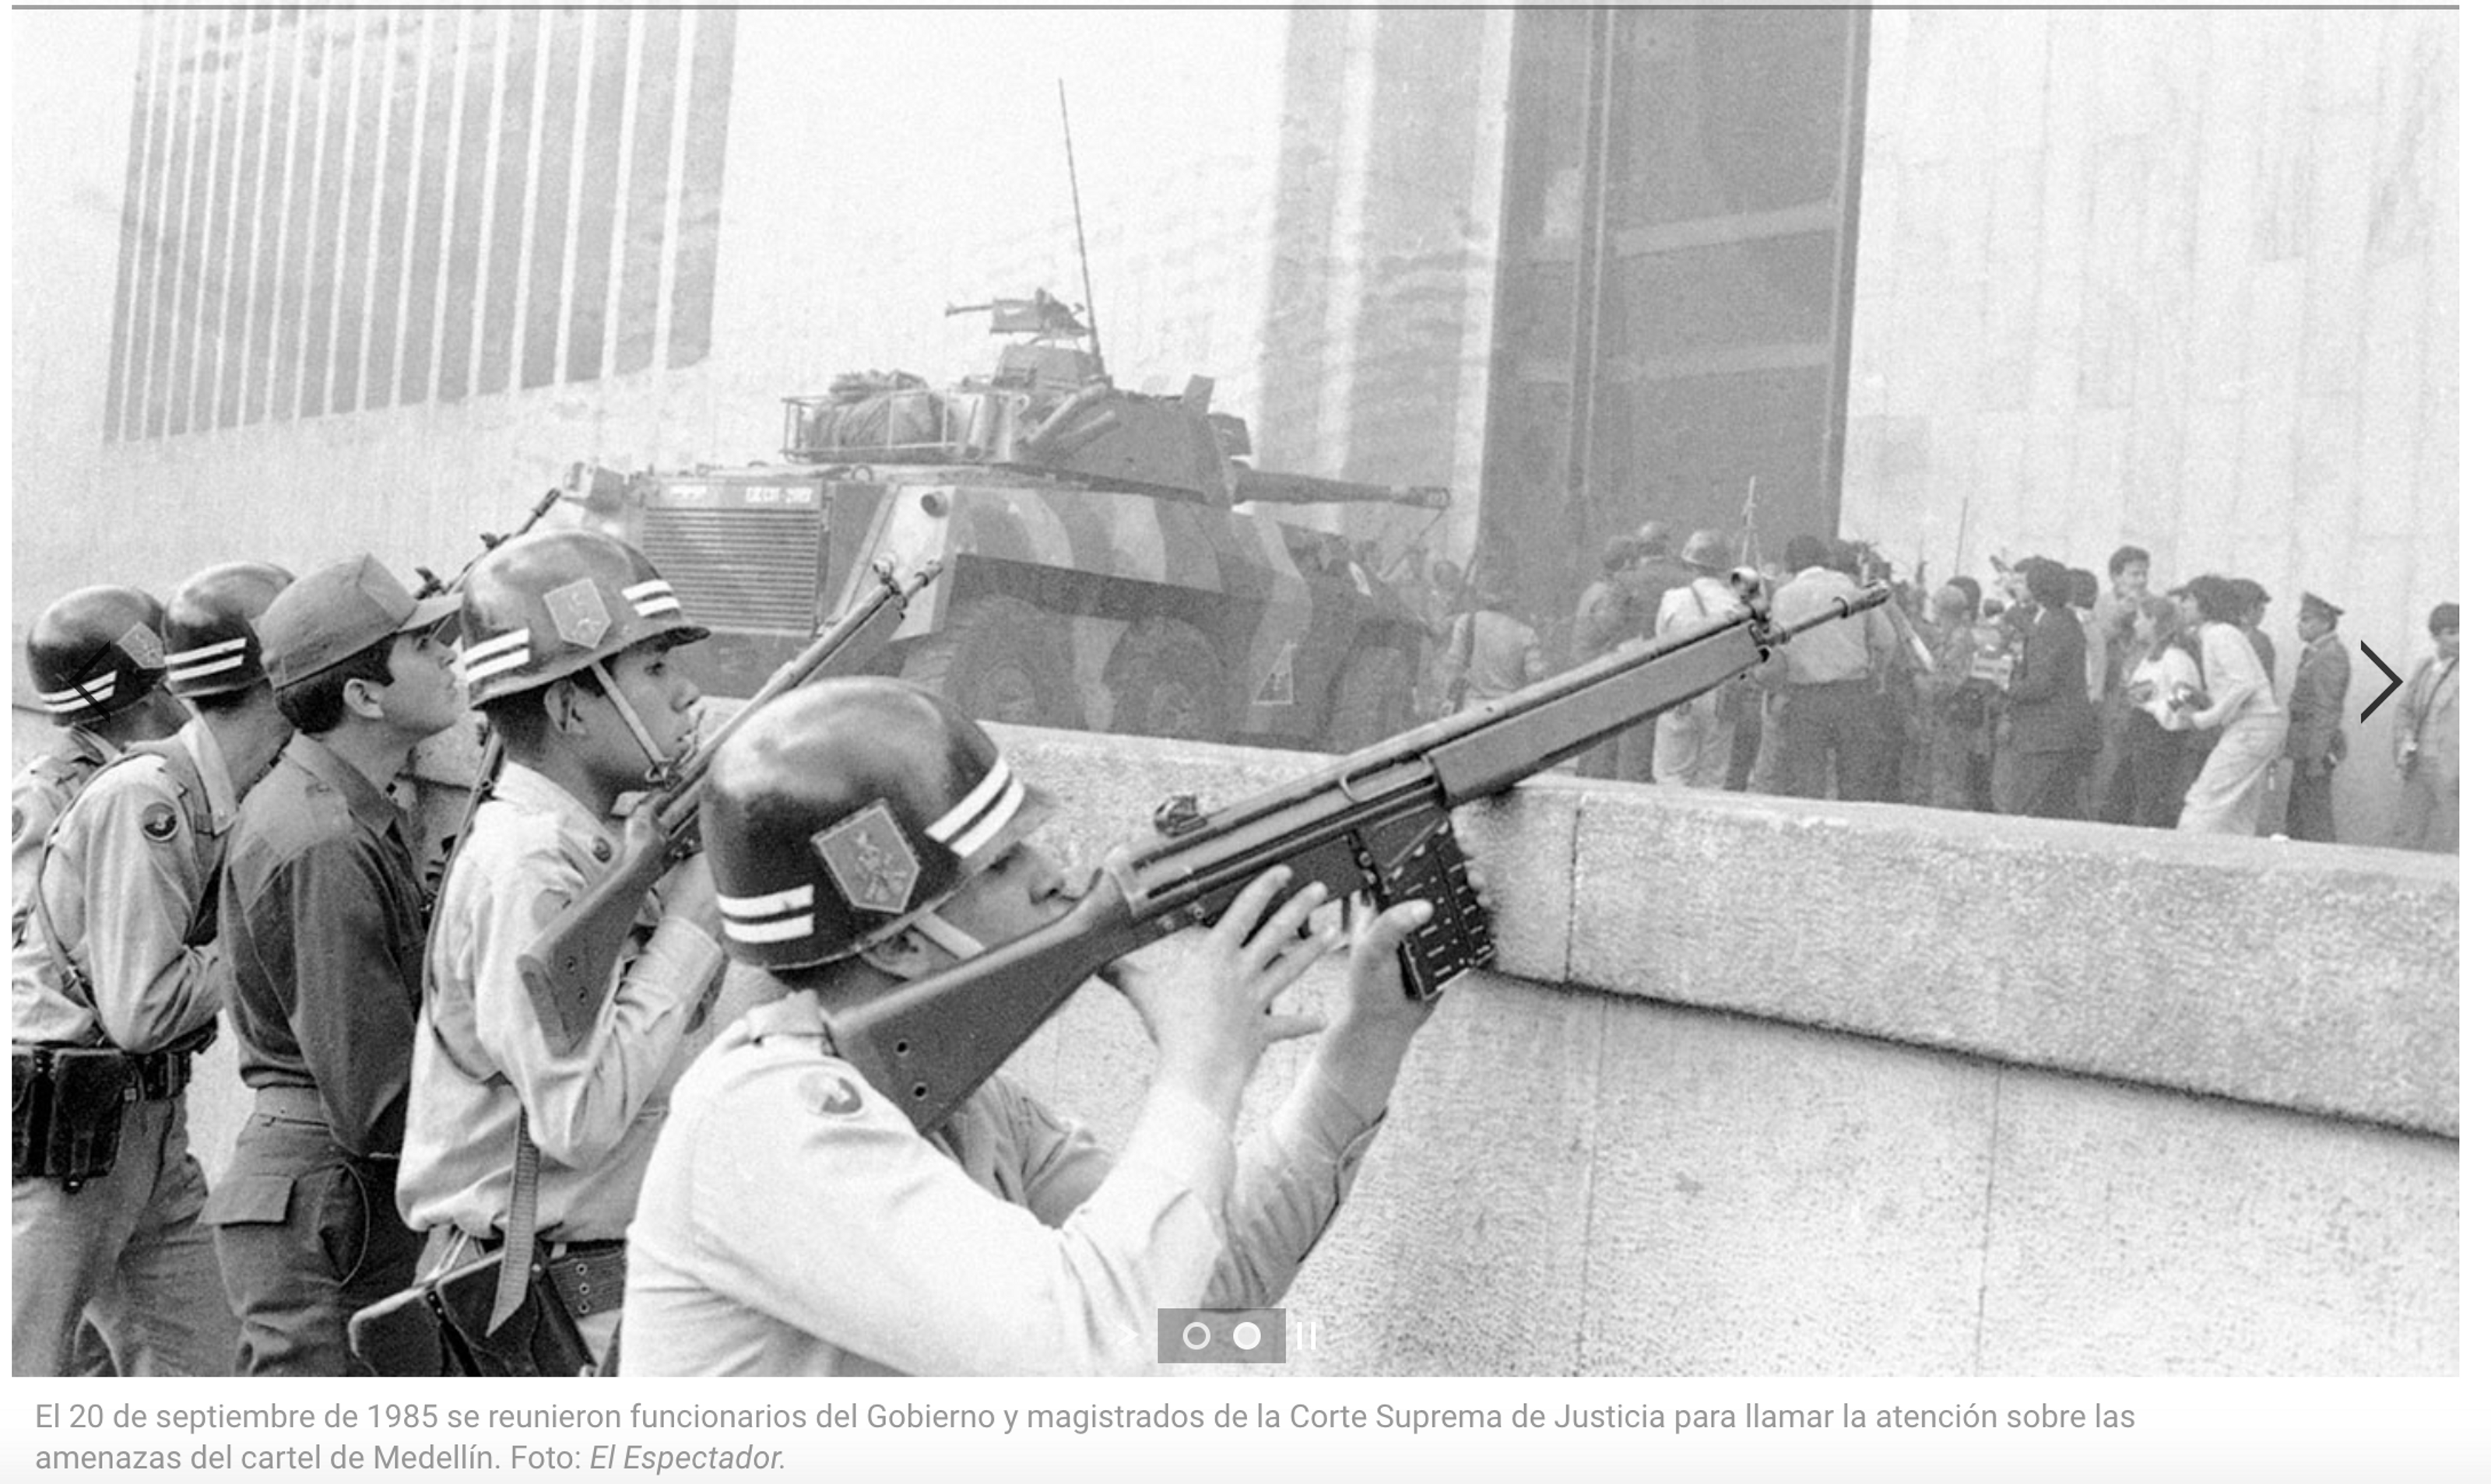 Colombia's Palace of Justice was overrun by guerrillas in 1985. The state responded with 10 tanks. Photo: El Espectador